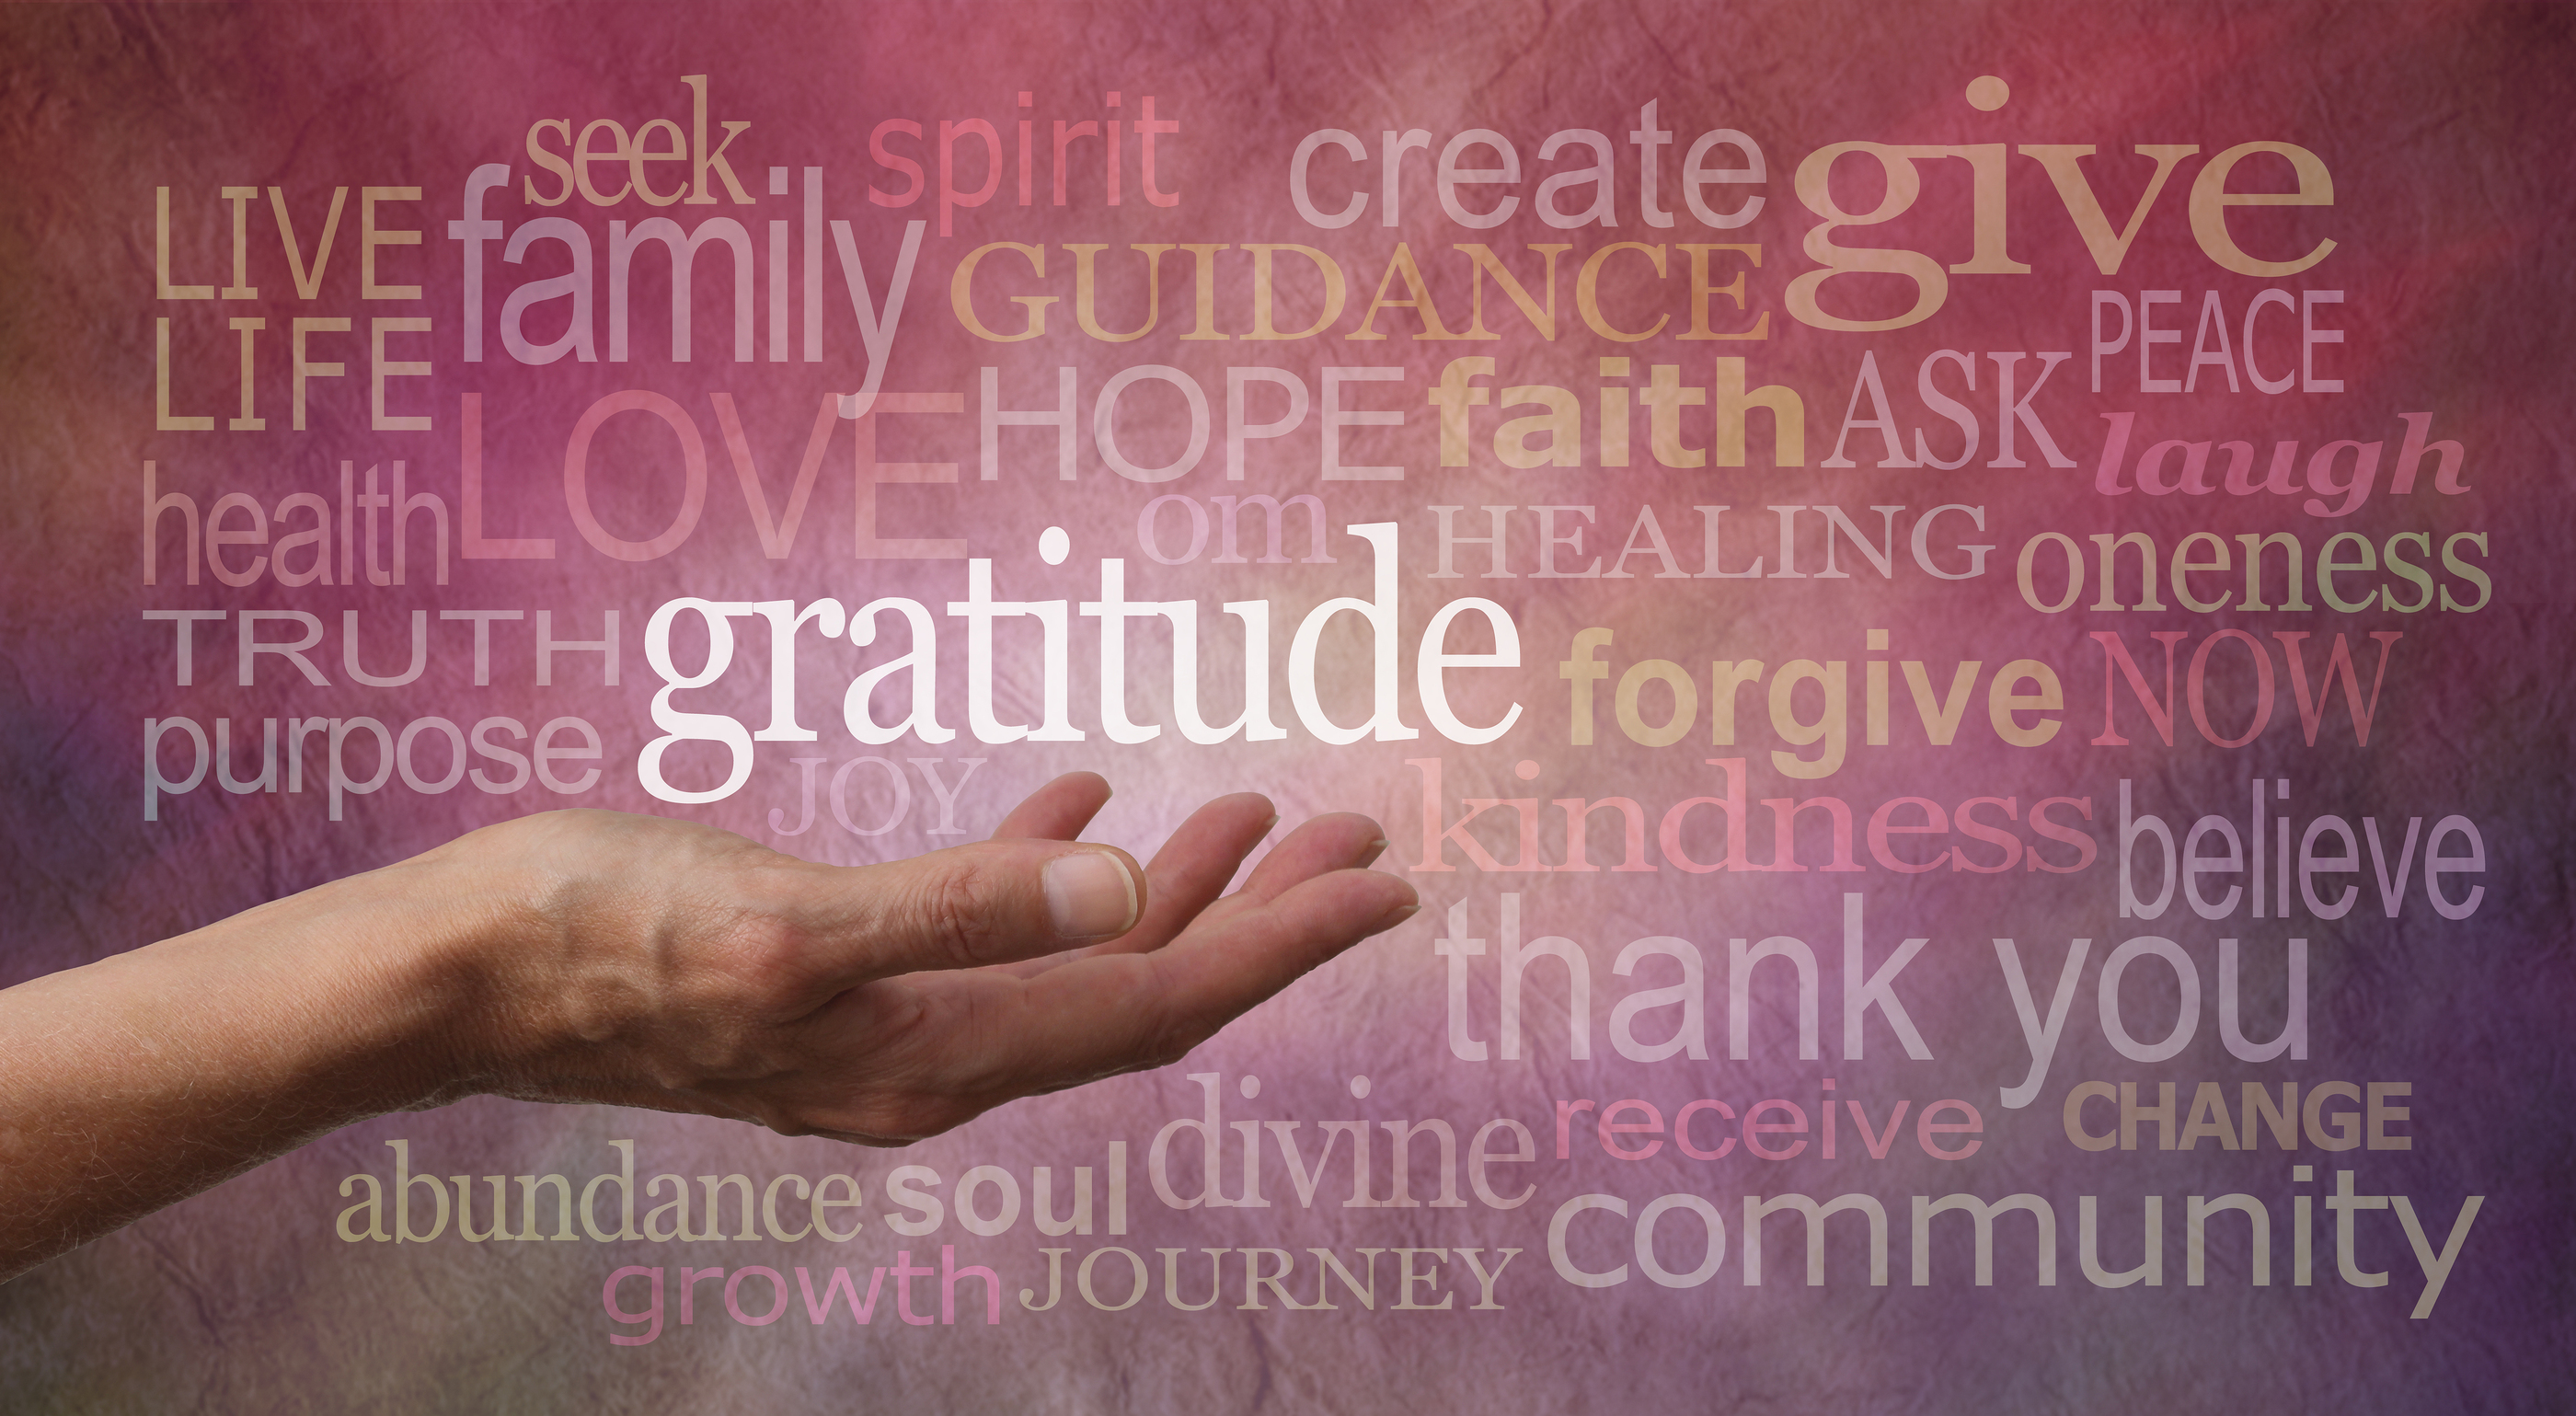 How to Be Grateful - 3 Things You Can Do